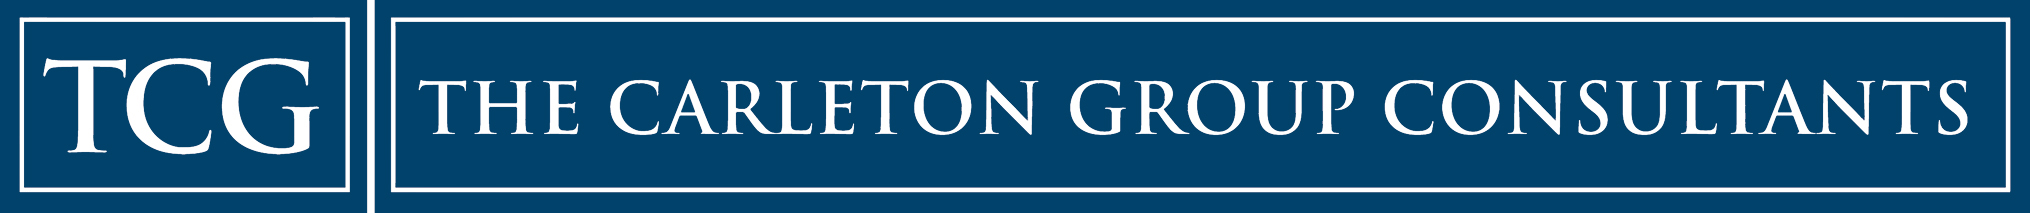 The Carleton Group Consultants